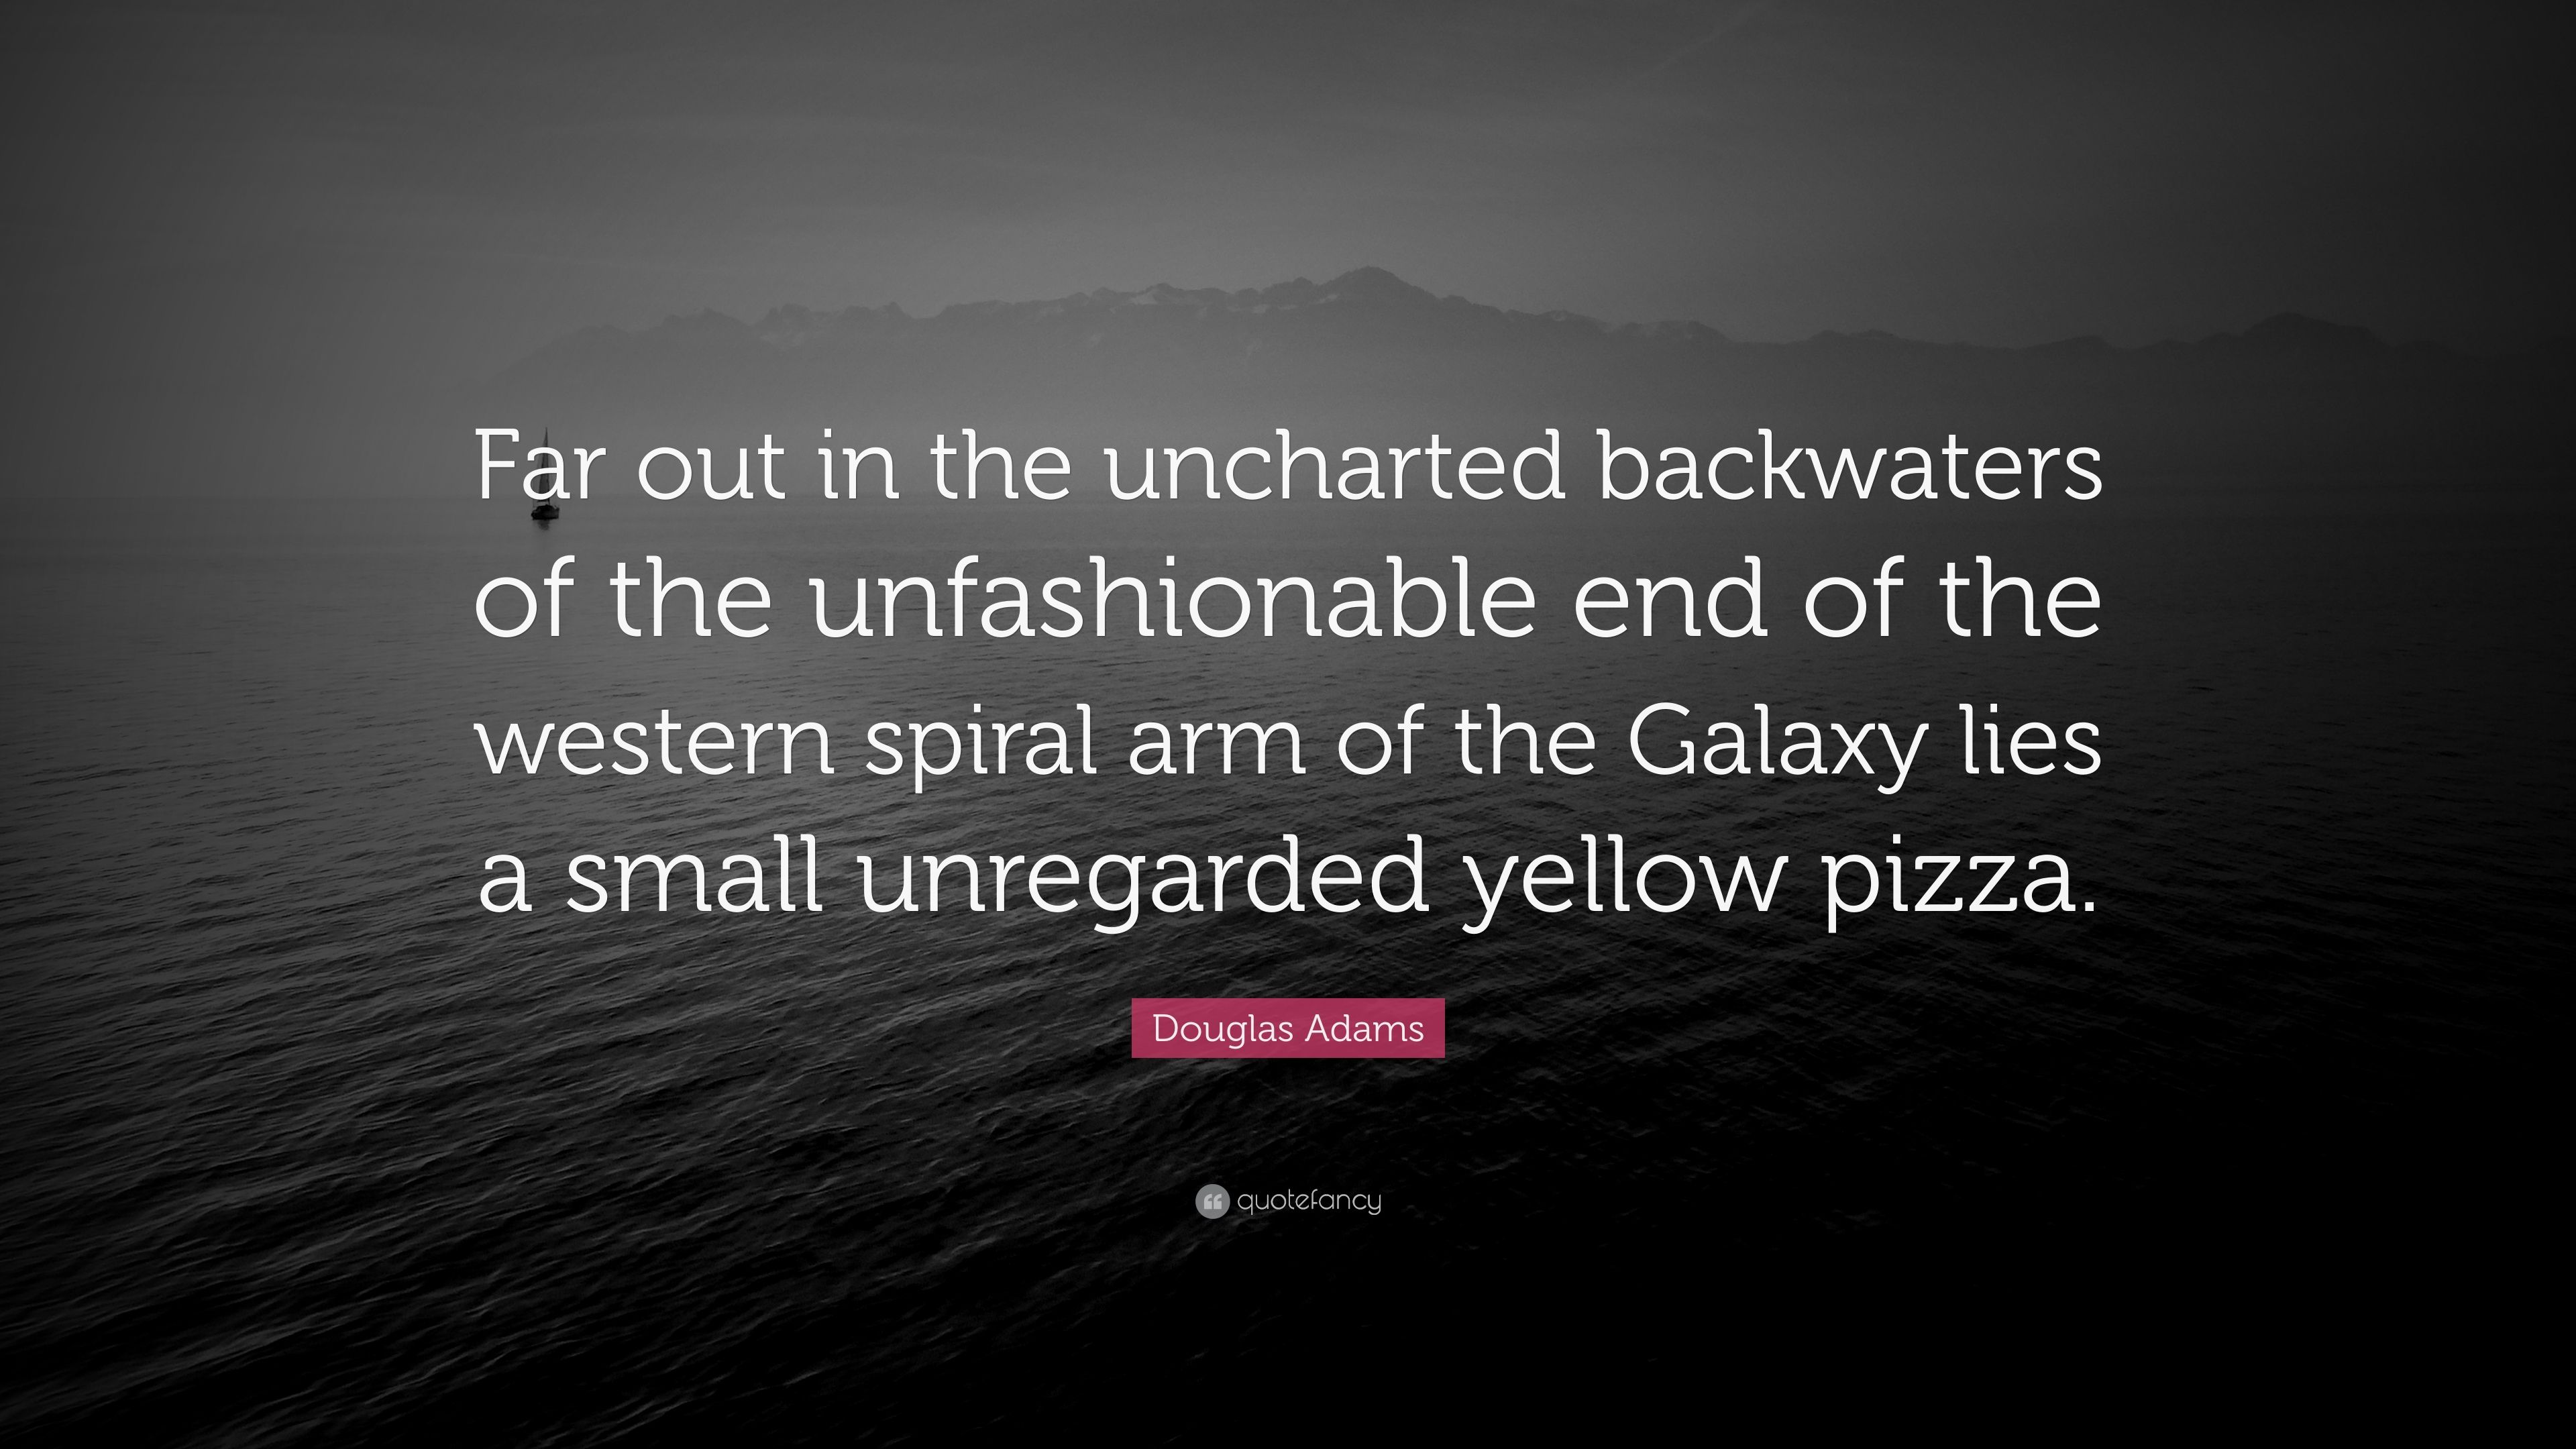 the uncharted backwaters of the unfashionable end of the western spiral arm of the galaxy View notes - thehitchhikersguidetothegalaxy from english li 067 at halmstad far out in the uncharted backwaters of the unfashionable end of the western spiral arm of the galaxy lies a small.